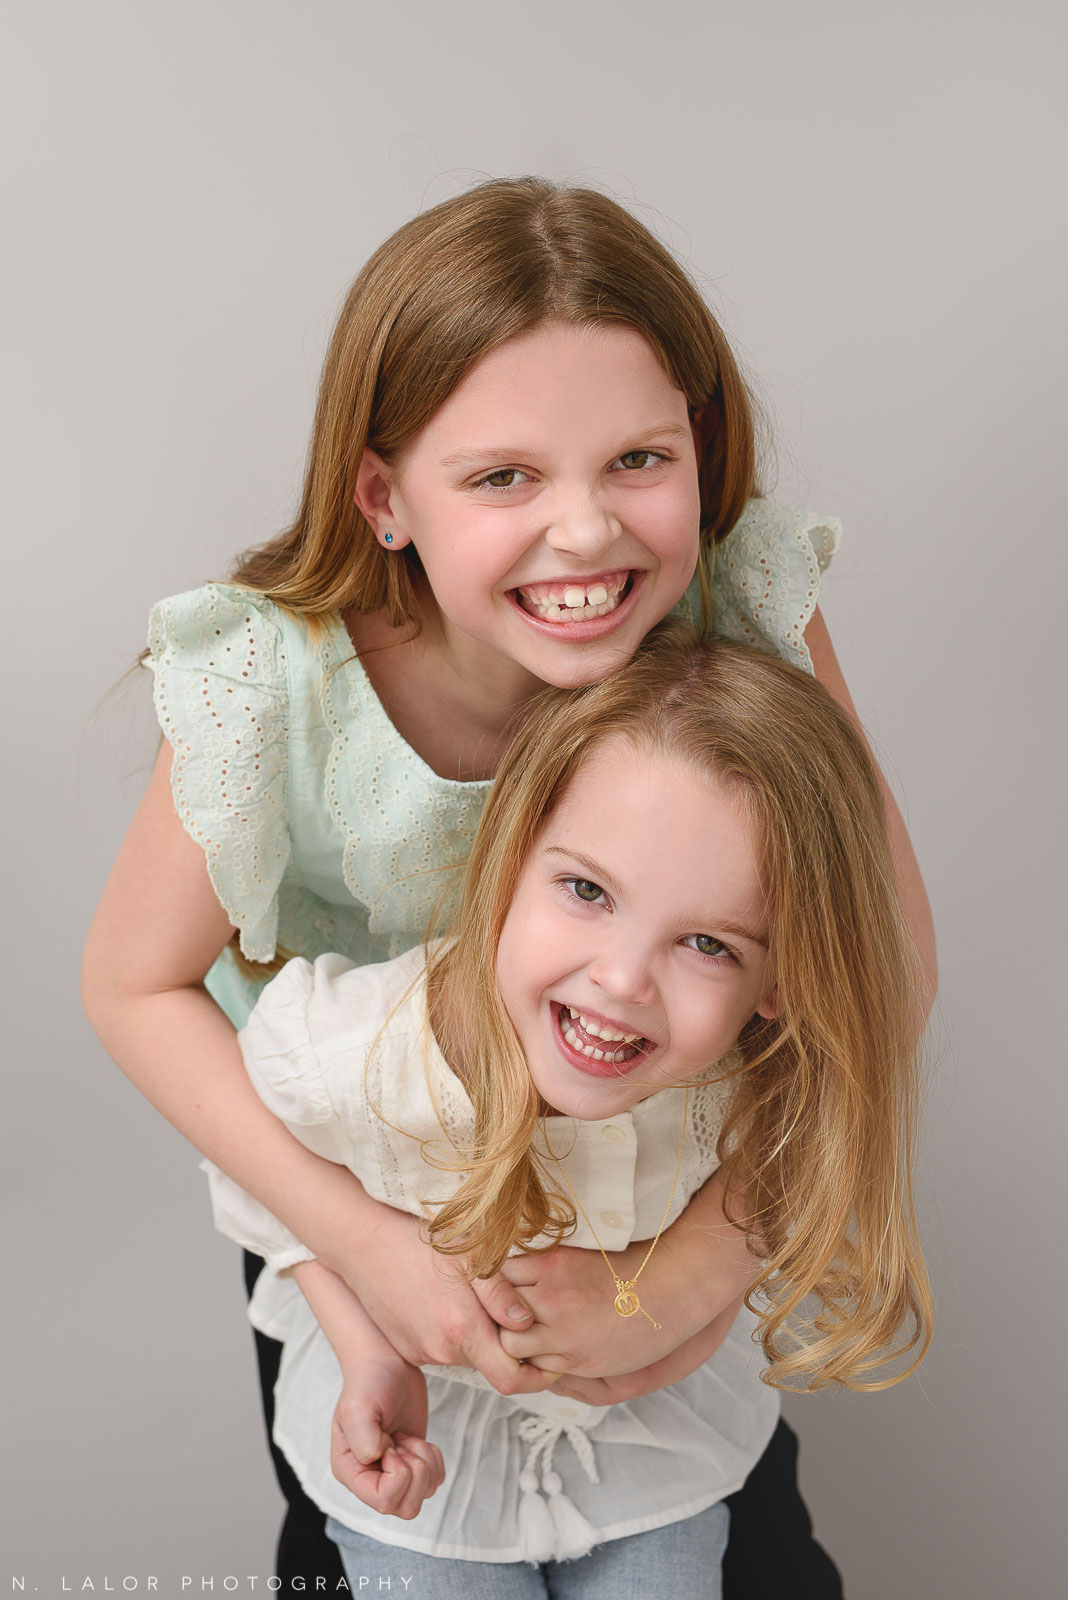 Image of two sisters laughing.Studio portrait by N. Lalor Photography in Greenwich, Connecticut.